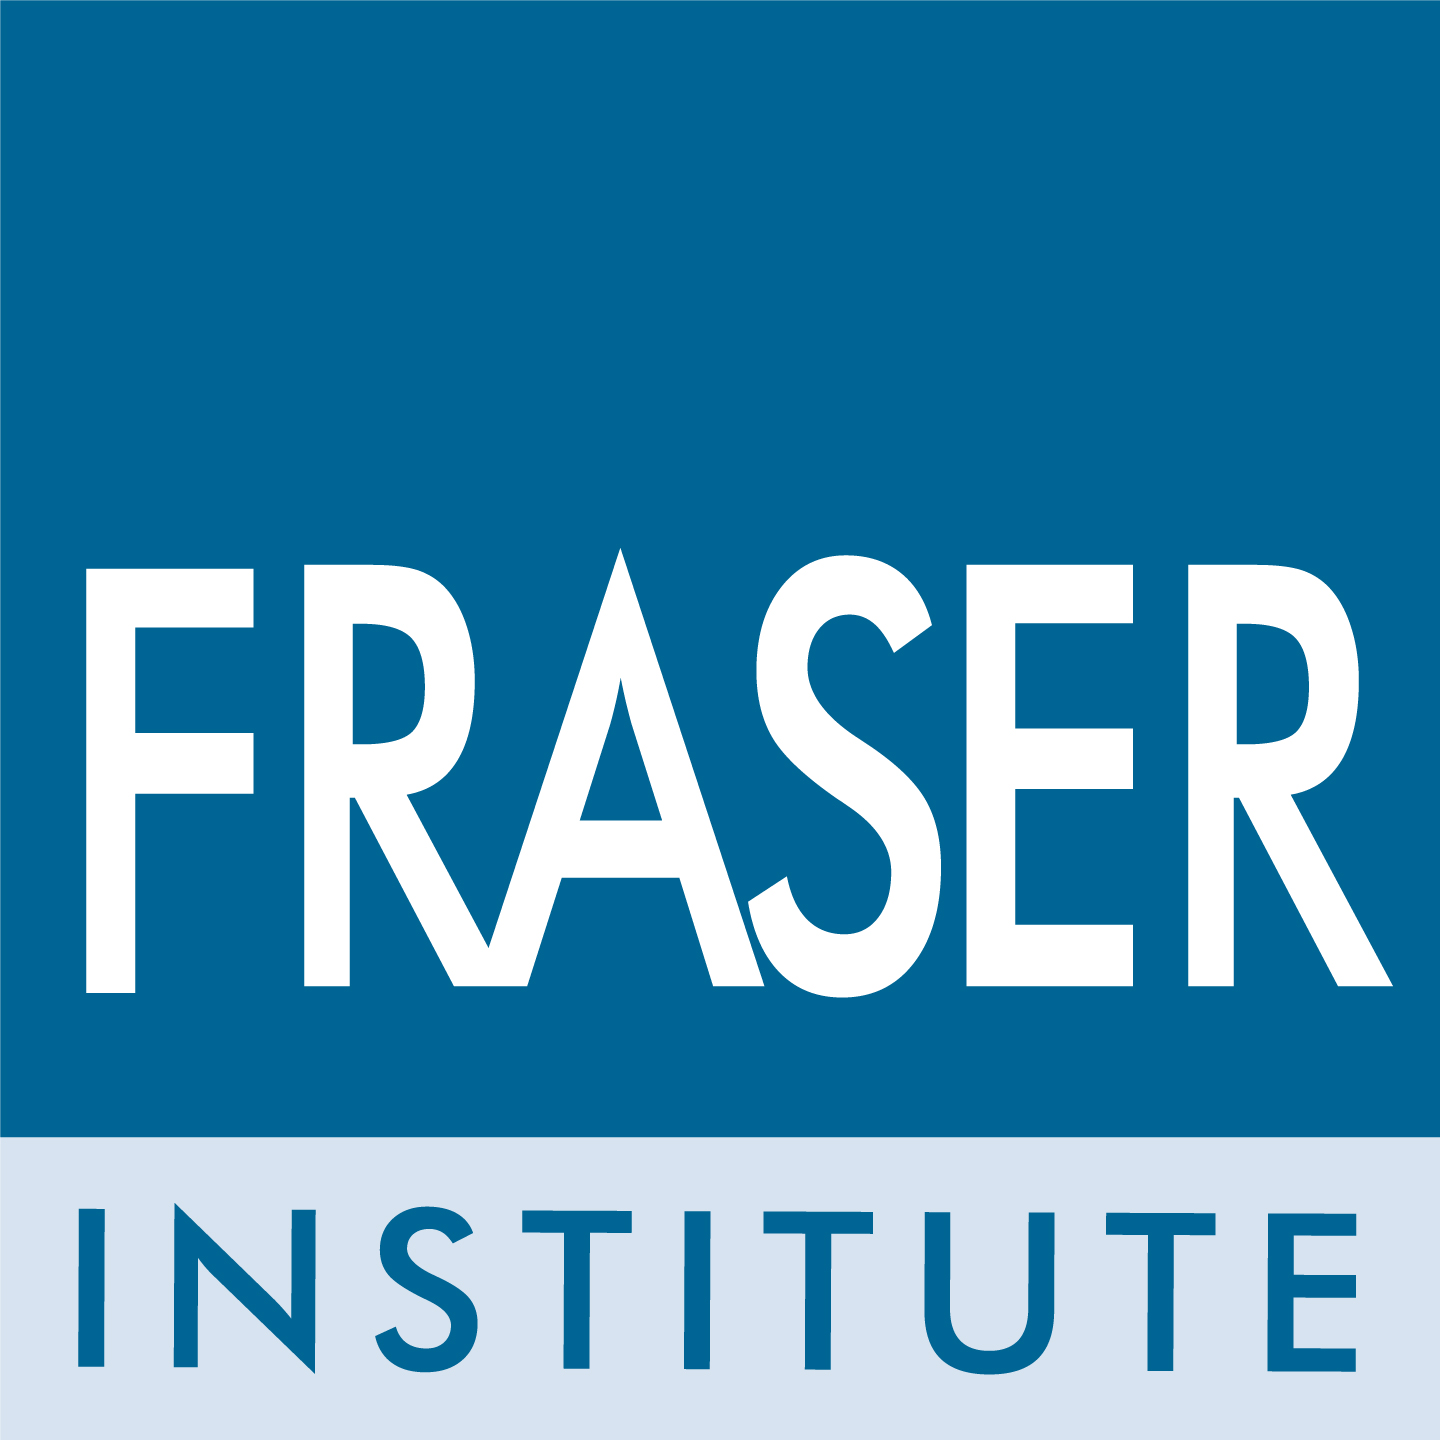 Fraser Institute Media Advisory: New study on taxes and upper-income earners coming Thursday, January 23